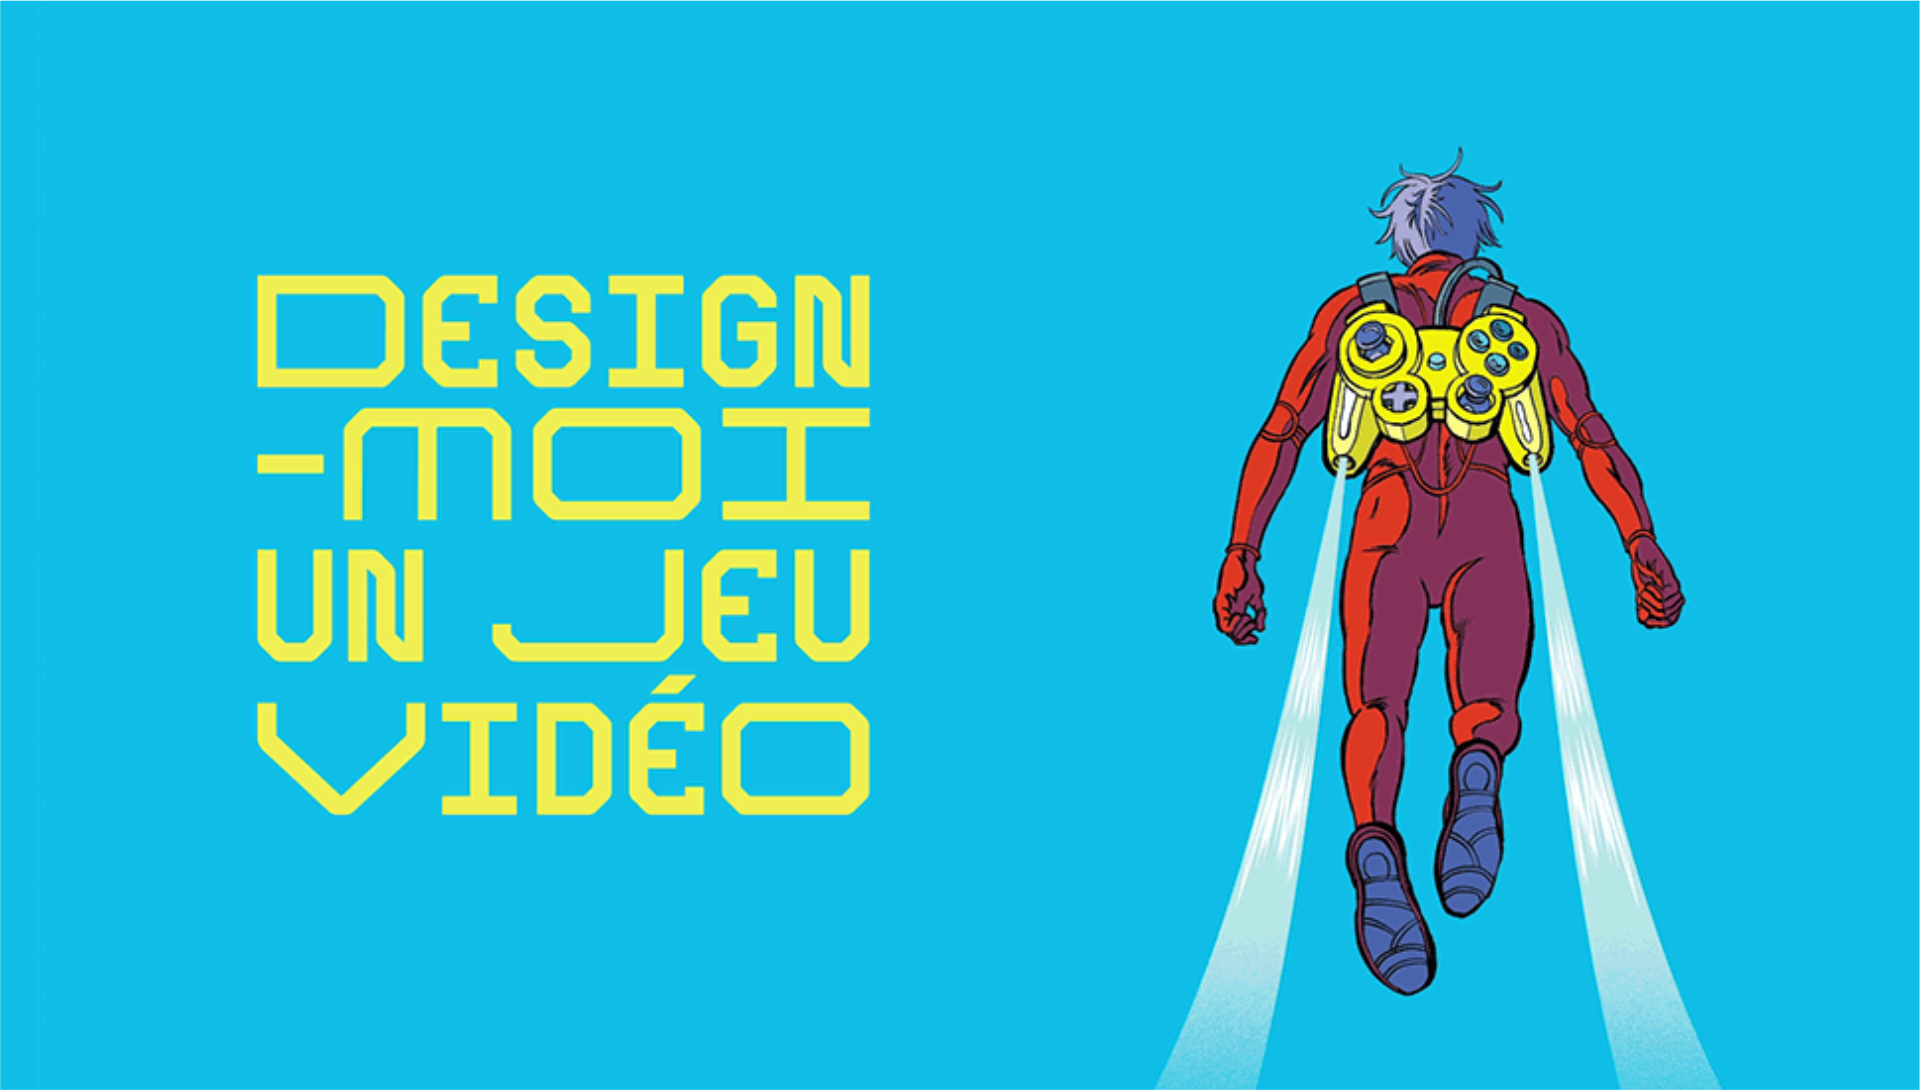 design_moi_un_jeu_video